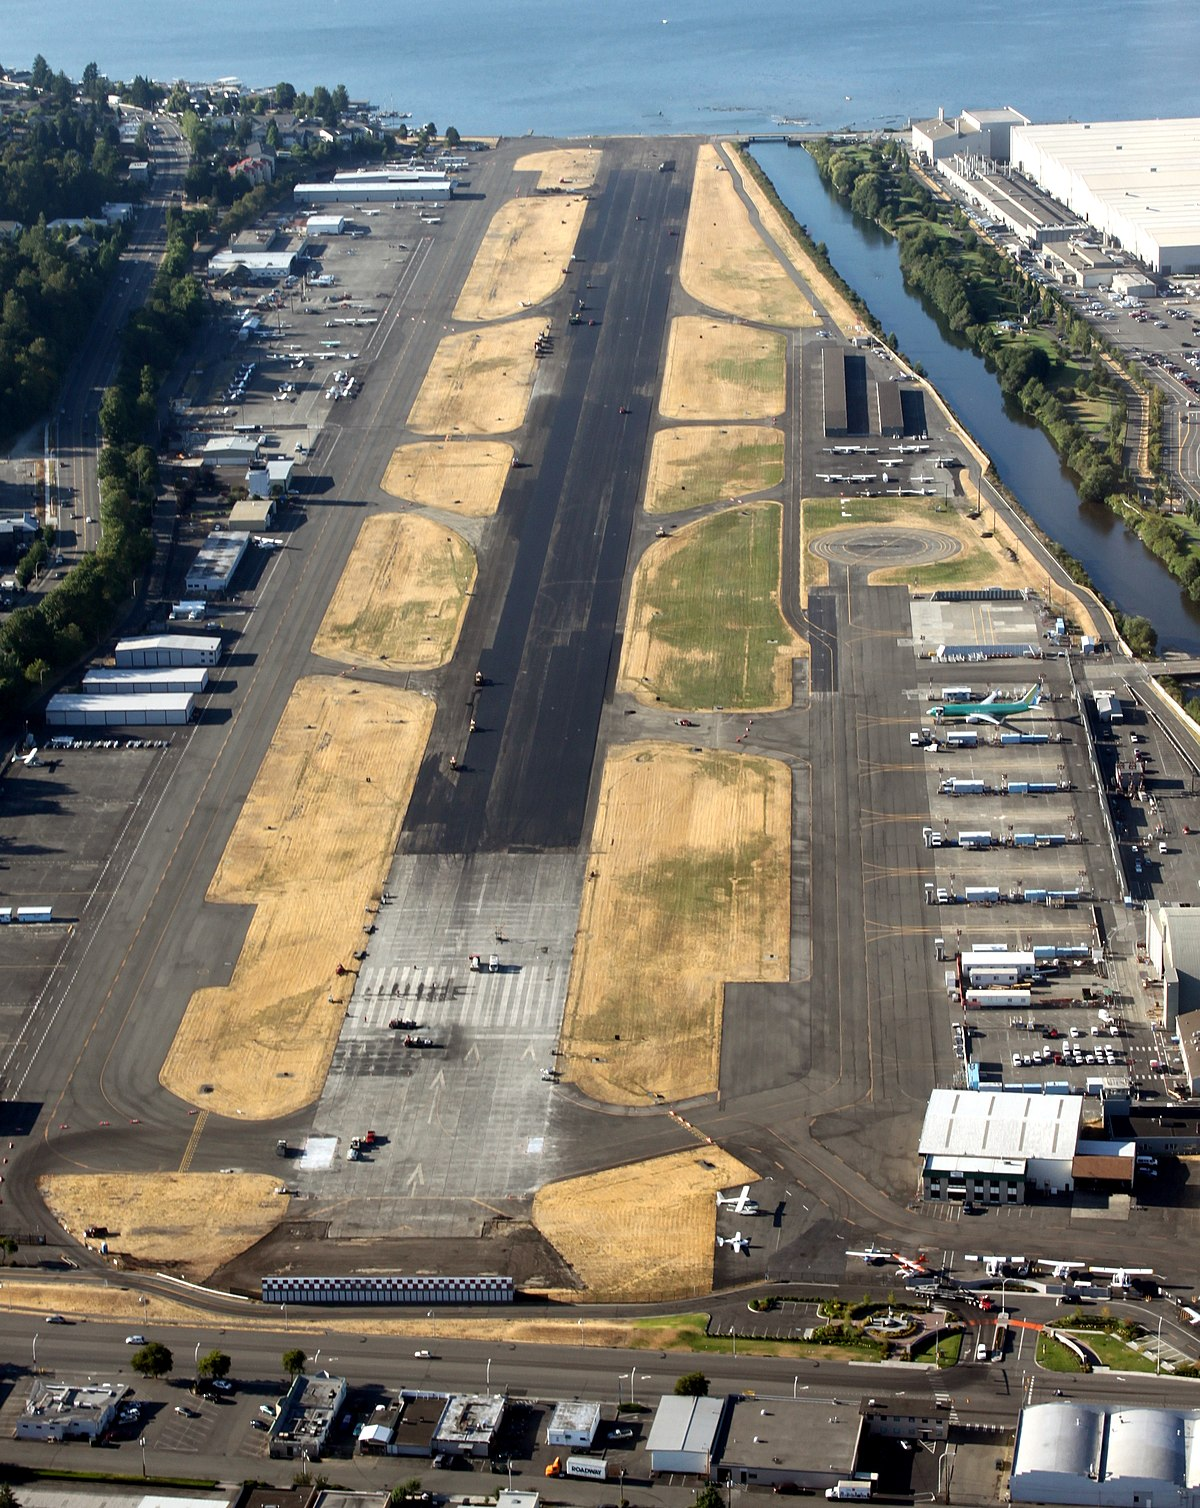 Renton Municipal Airport - Wikipedia